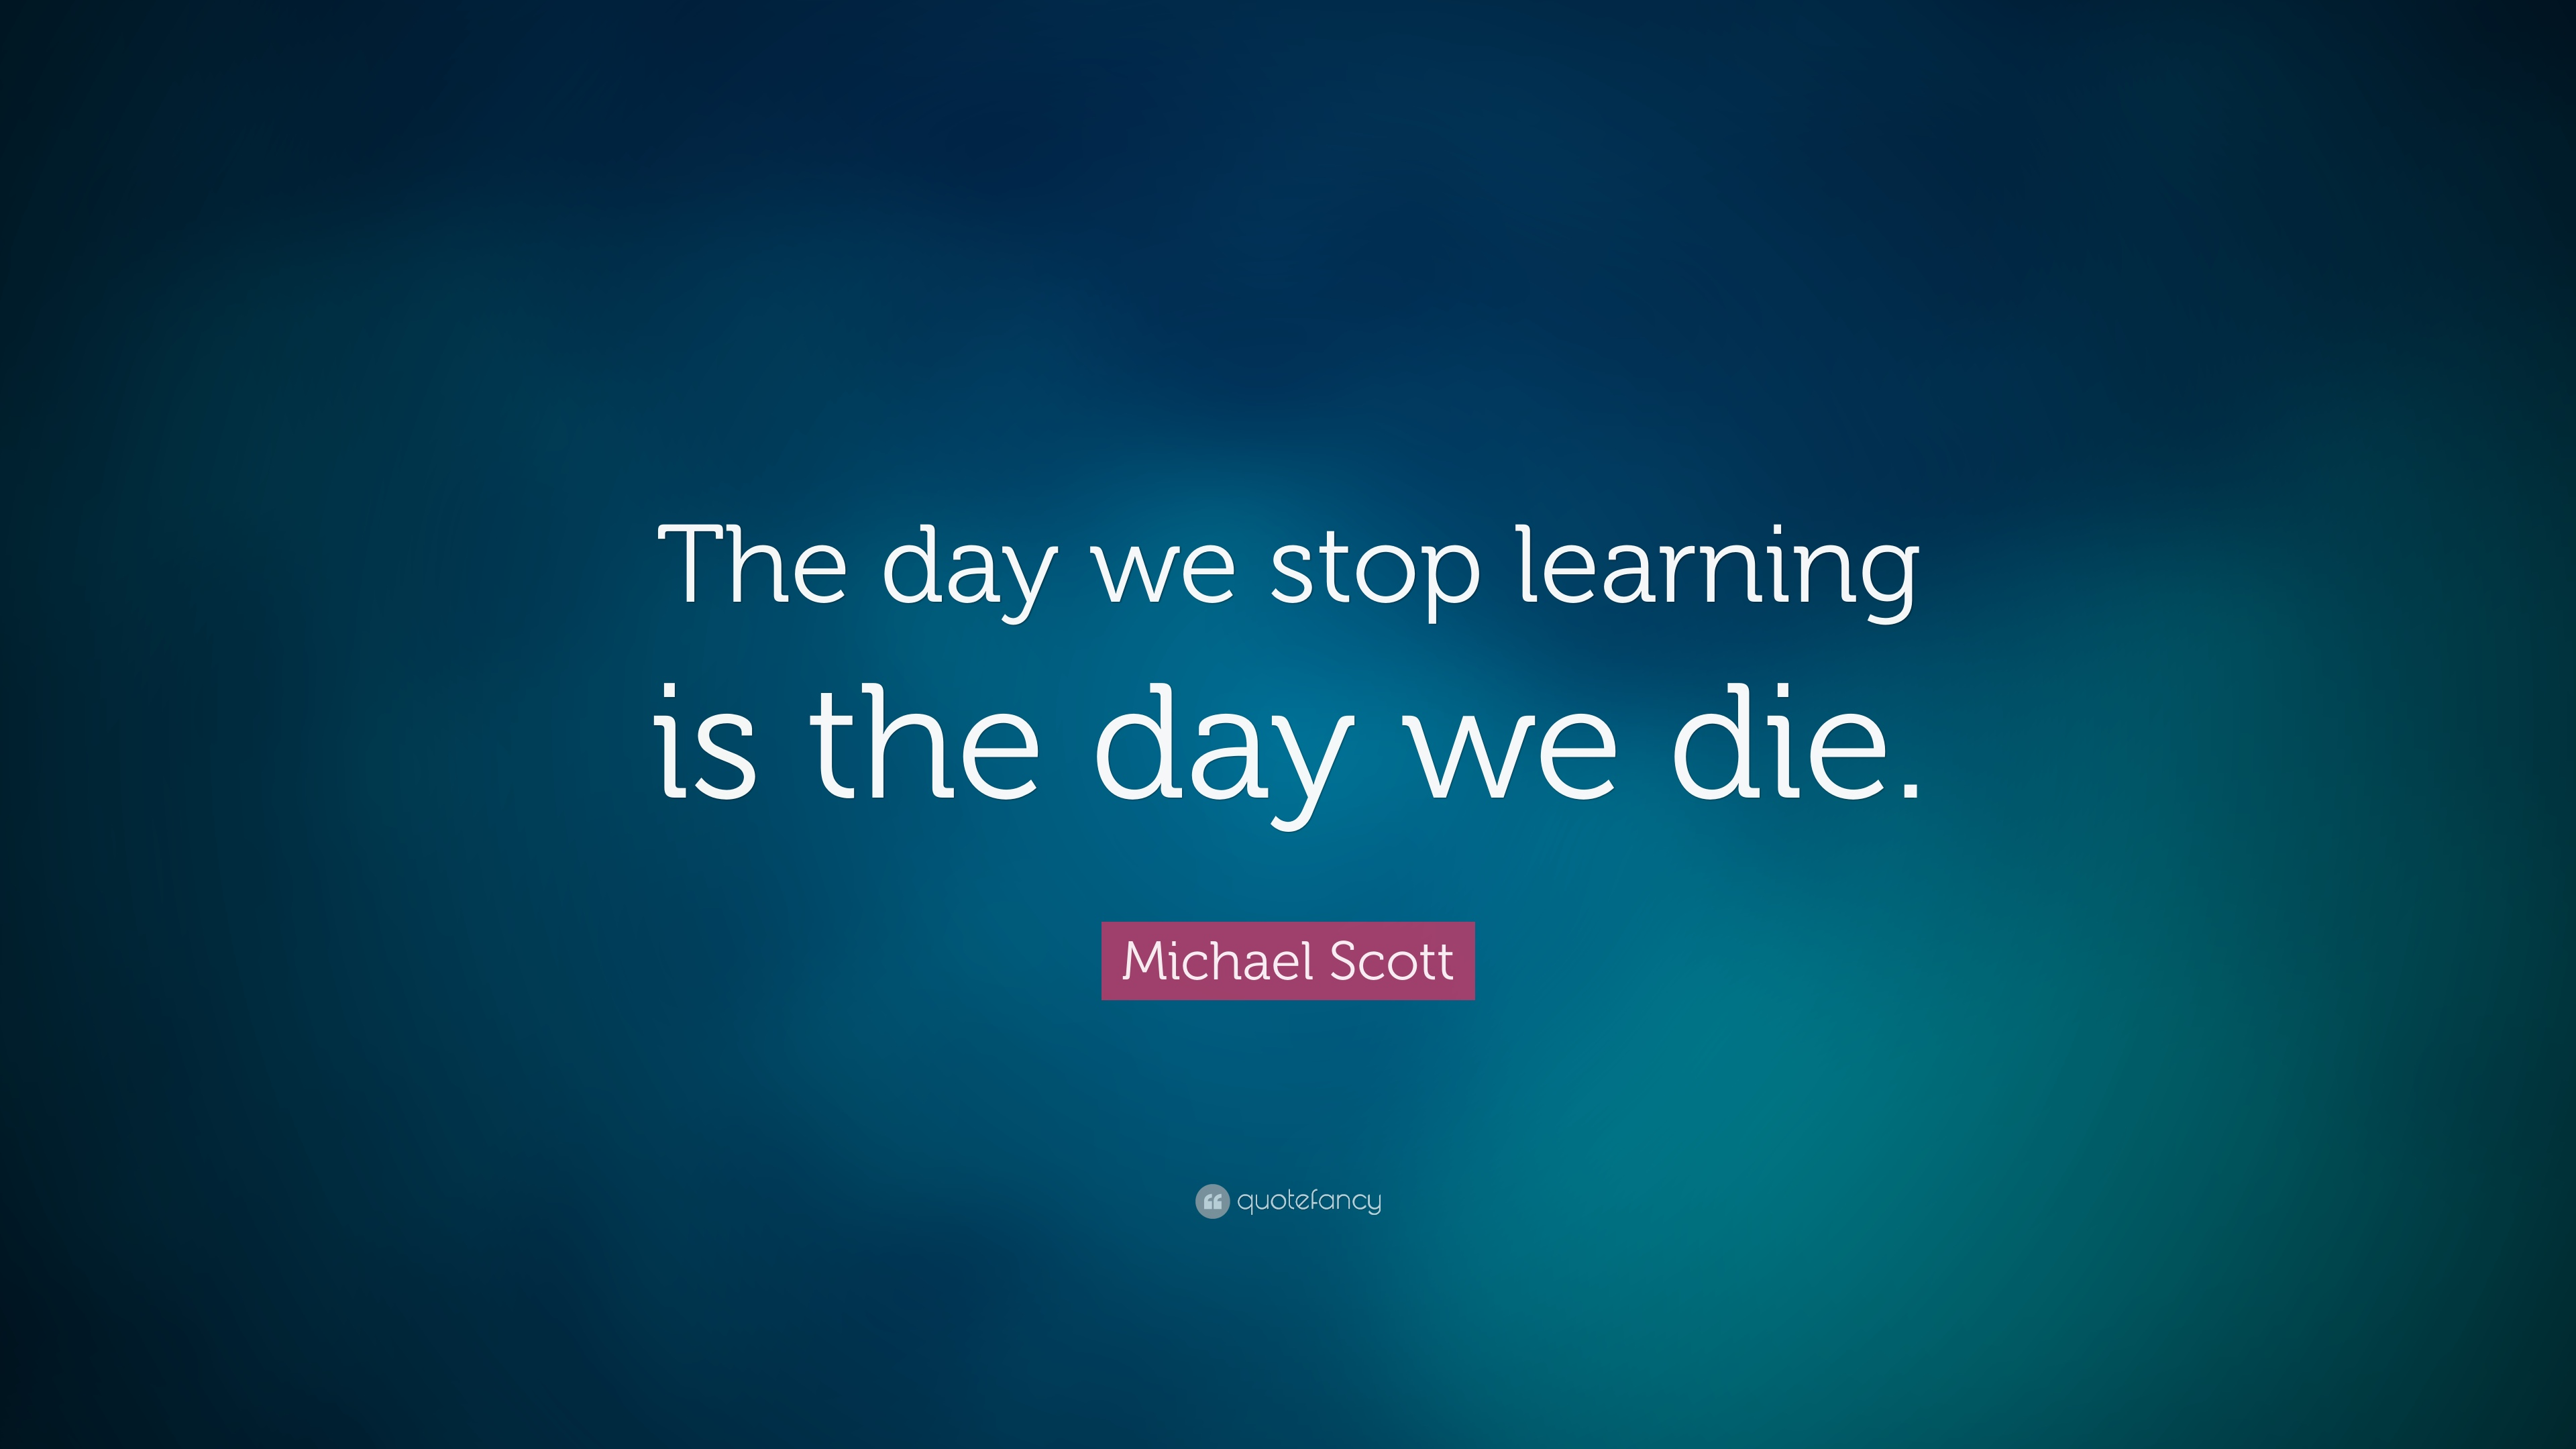 michael scott quote �the day we stop learning is the day